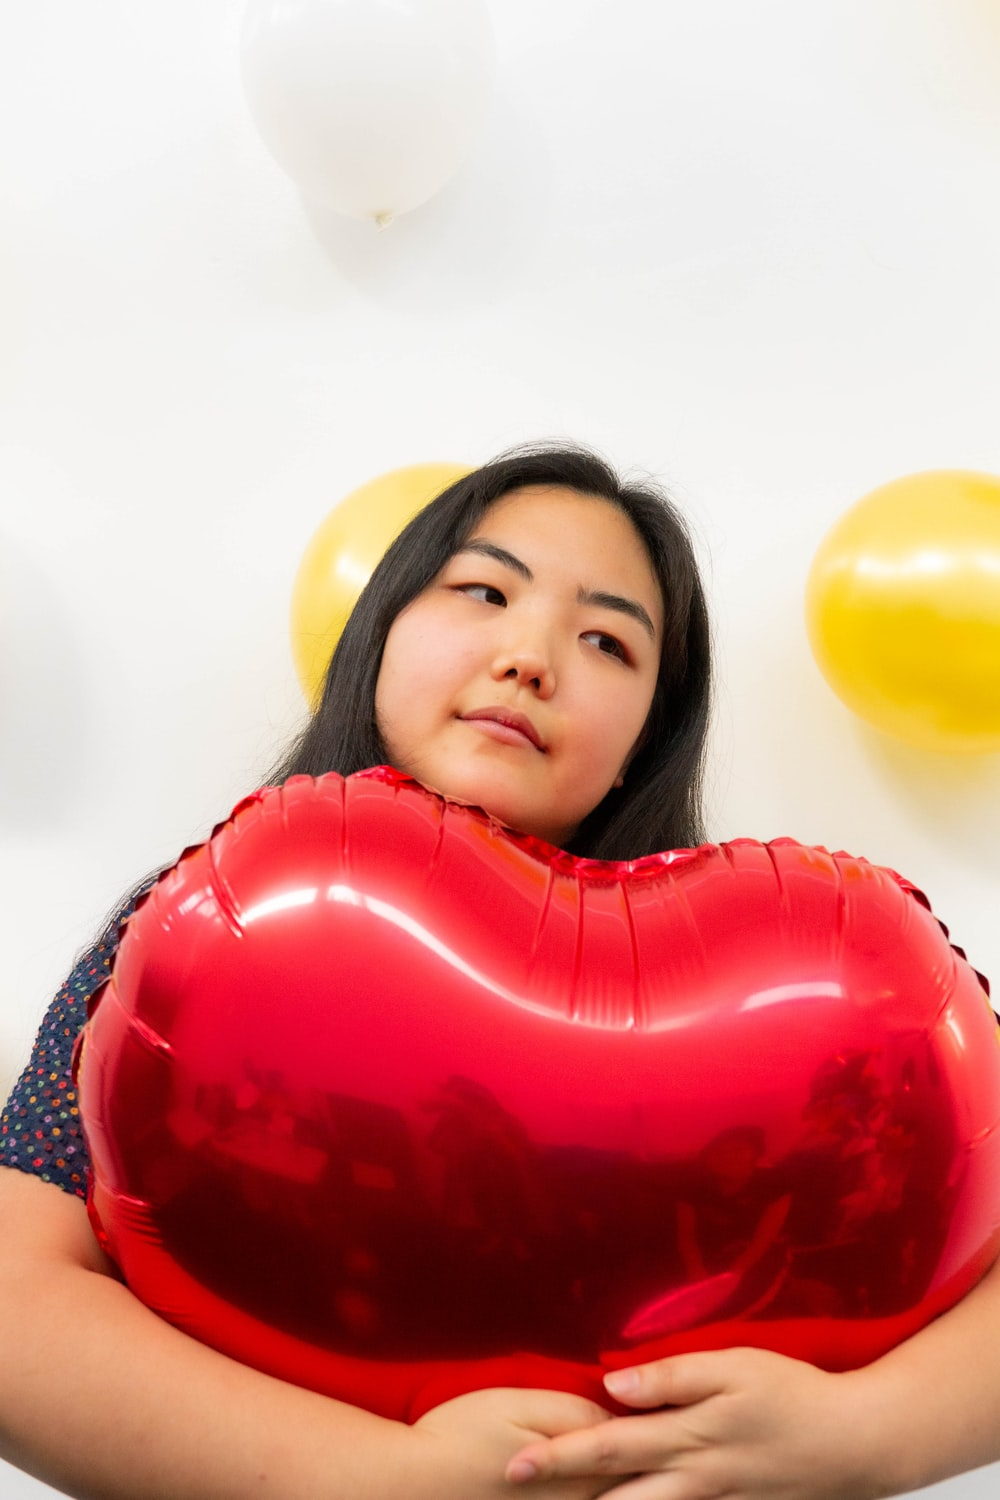 girl in red and white shirt holding heart balloon